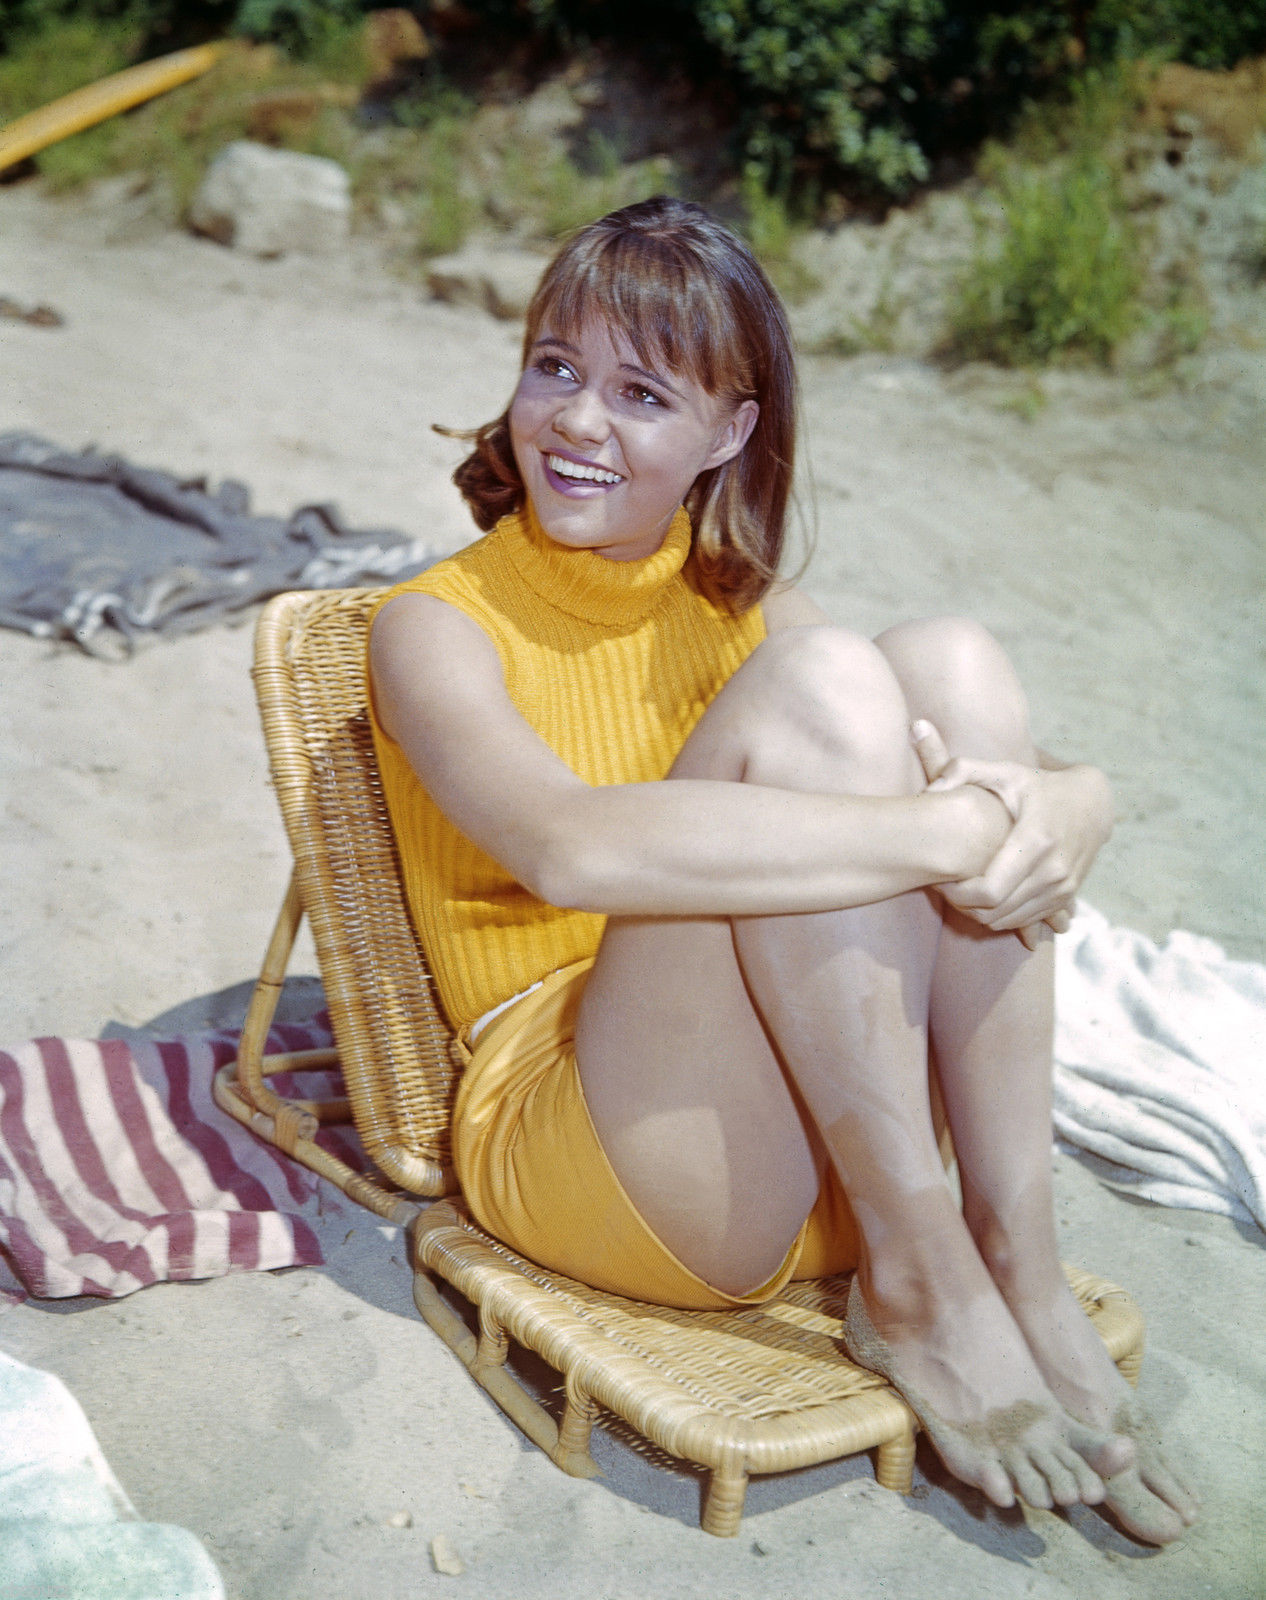 gidget field Young sally